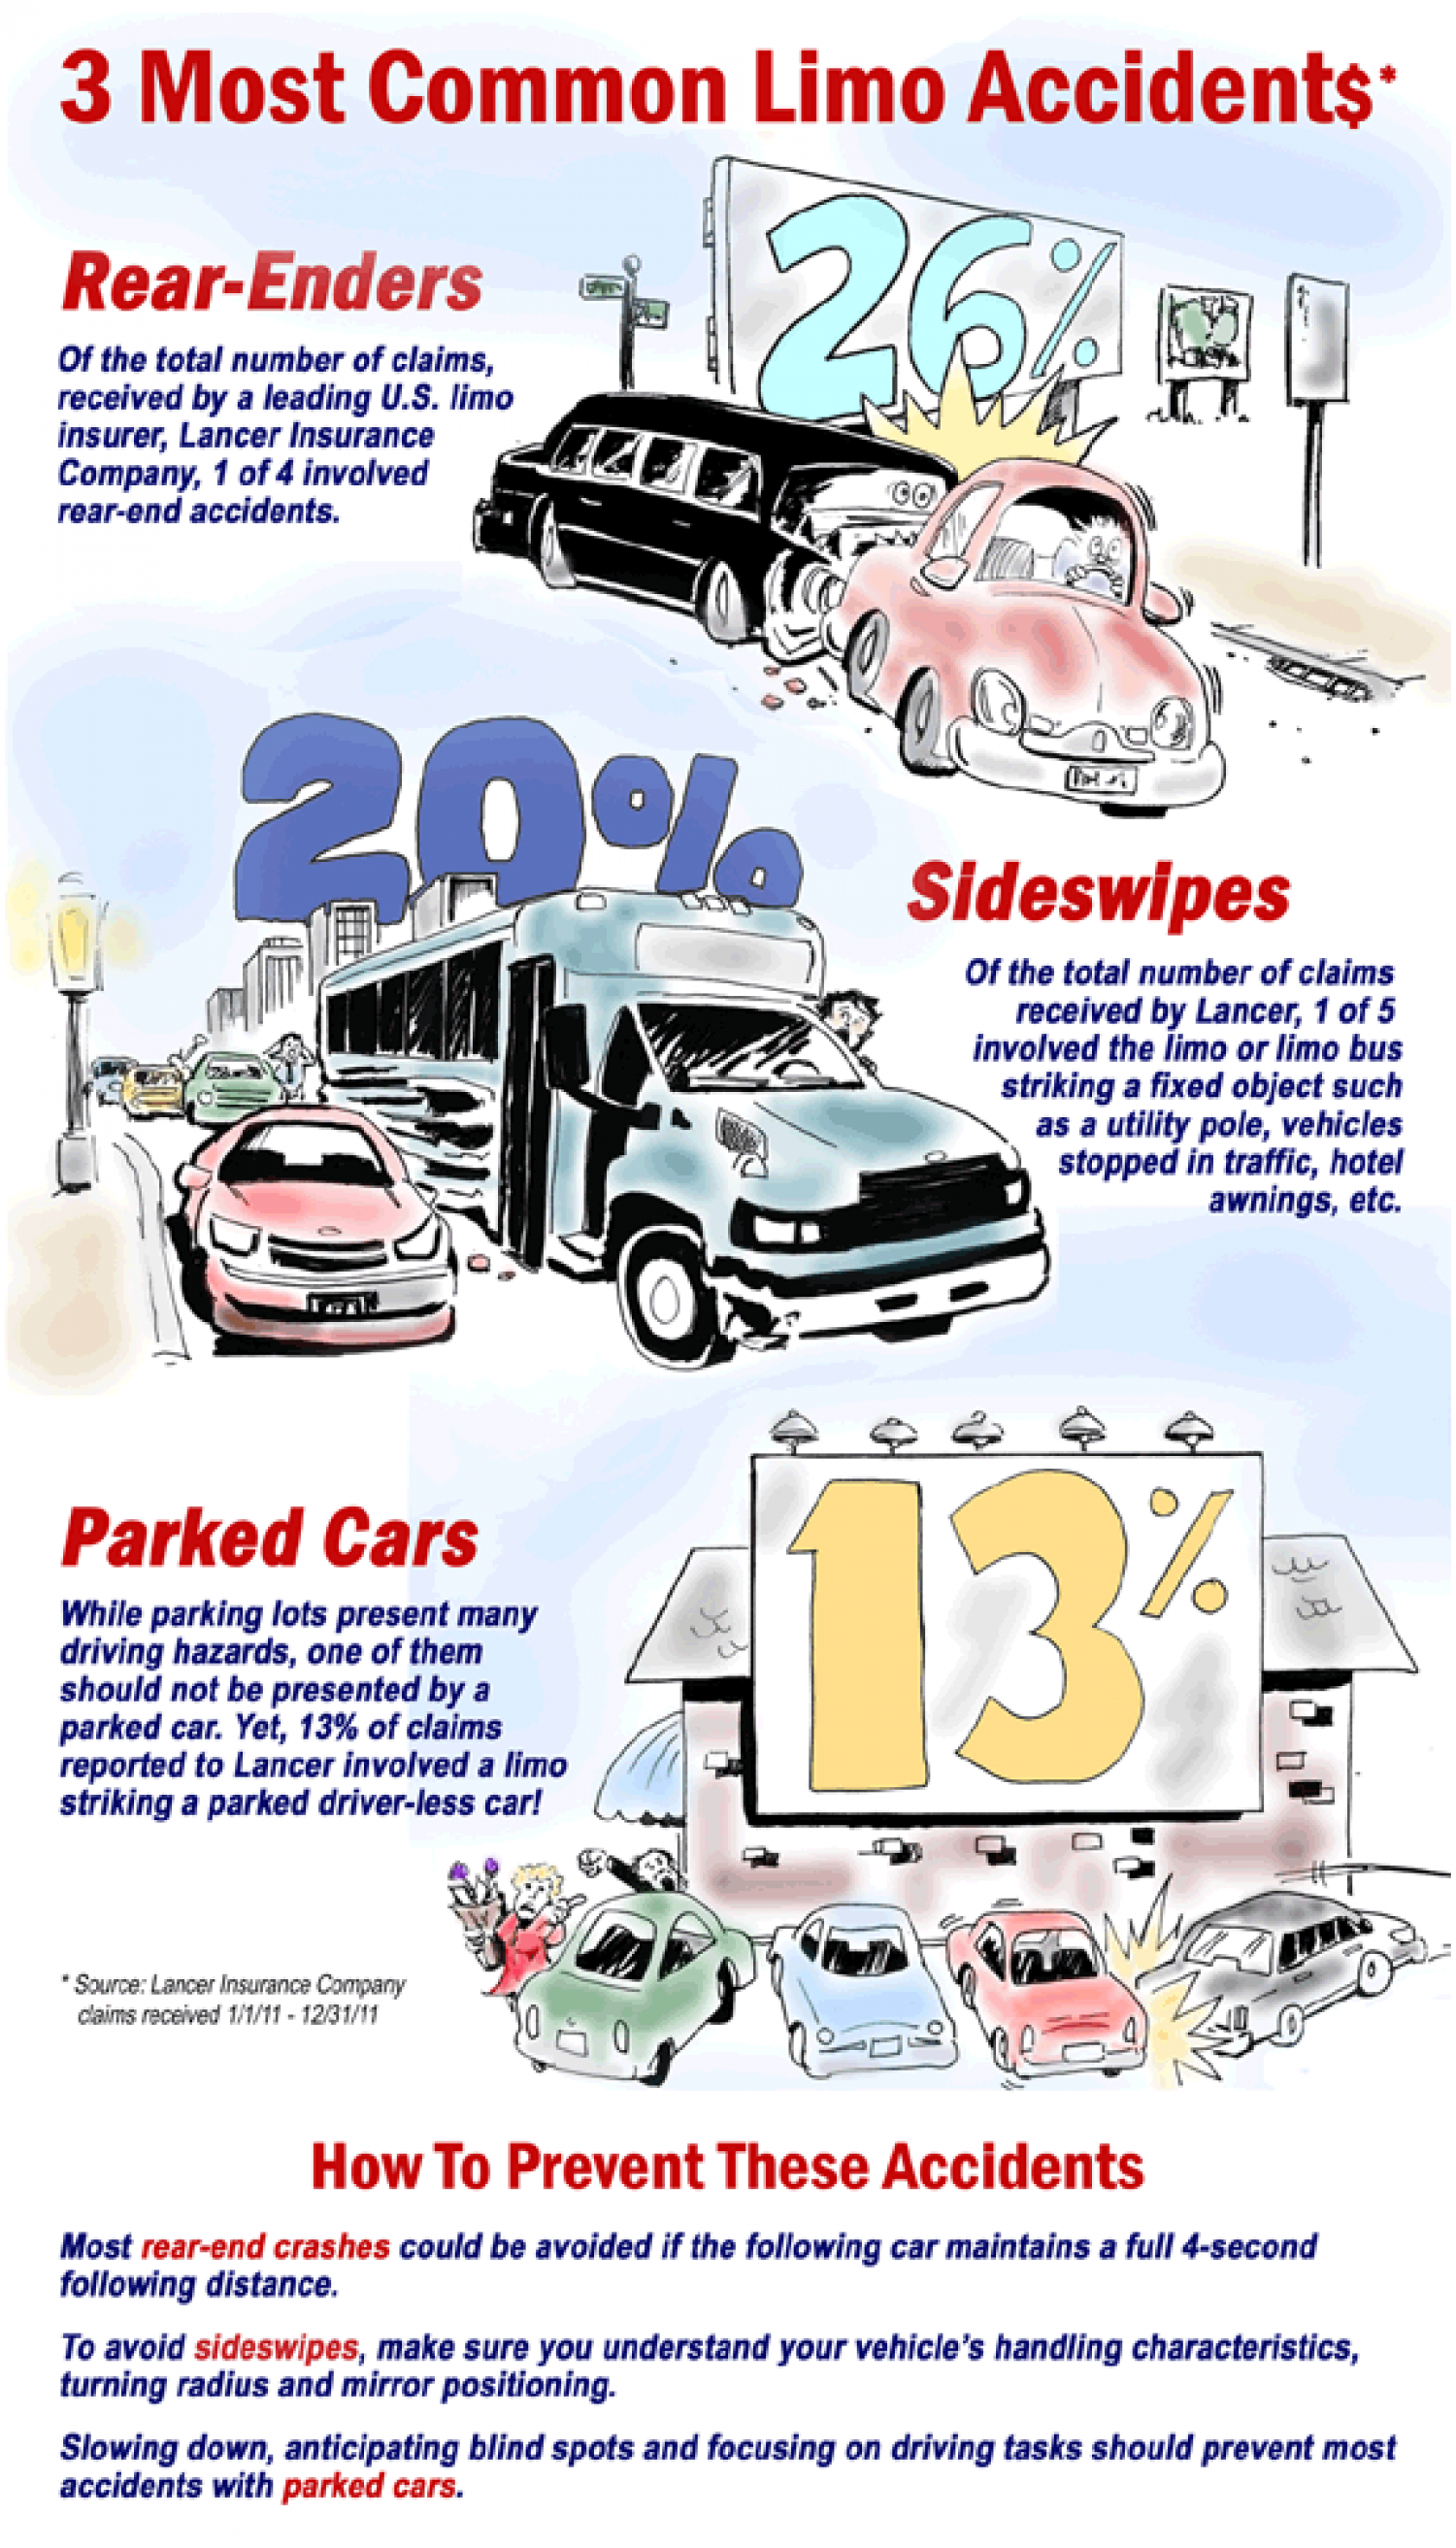 The 3 Most Common Limo Accidents Infographic